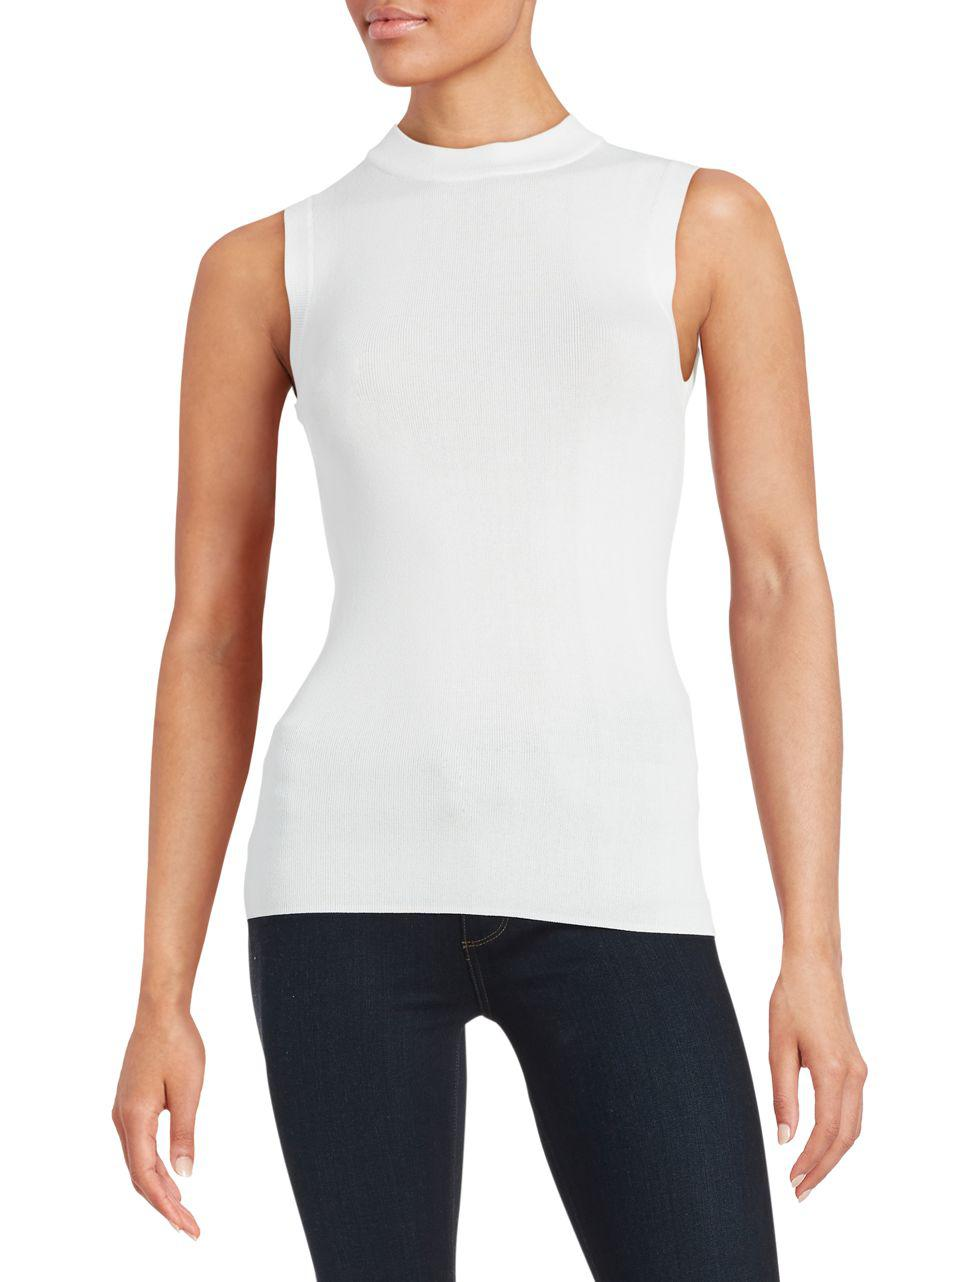 DKNY Knit Sleeveless Top Best Seller Online Clearance Professional Cheap Looking For Cheap Price Outlet HLnUKp